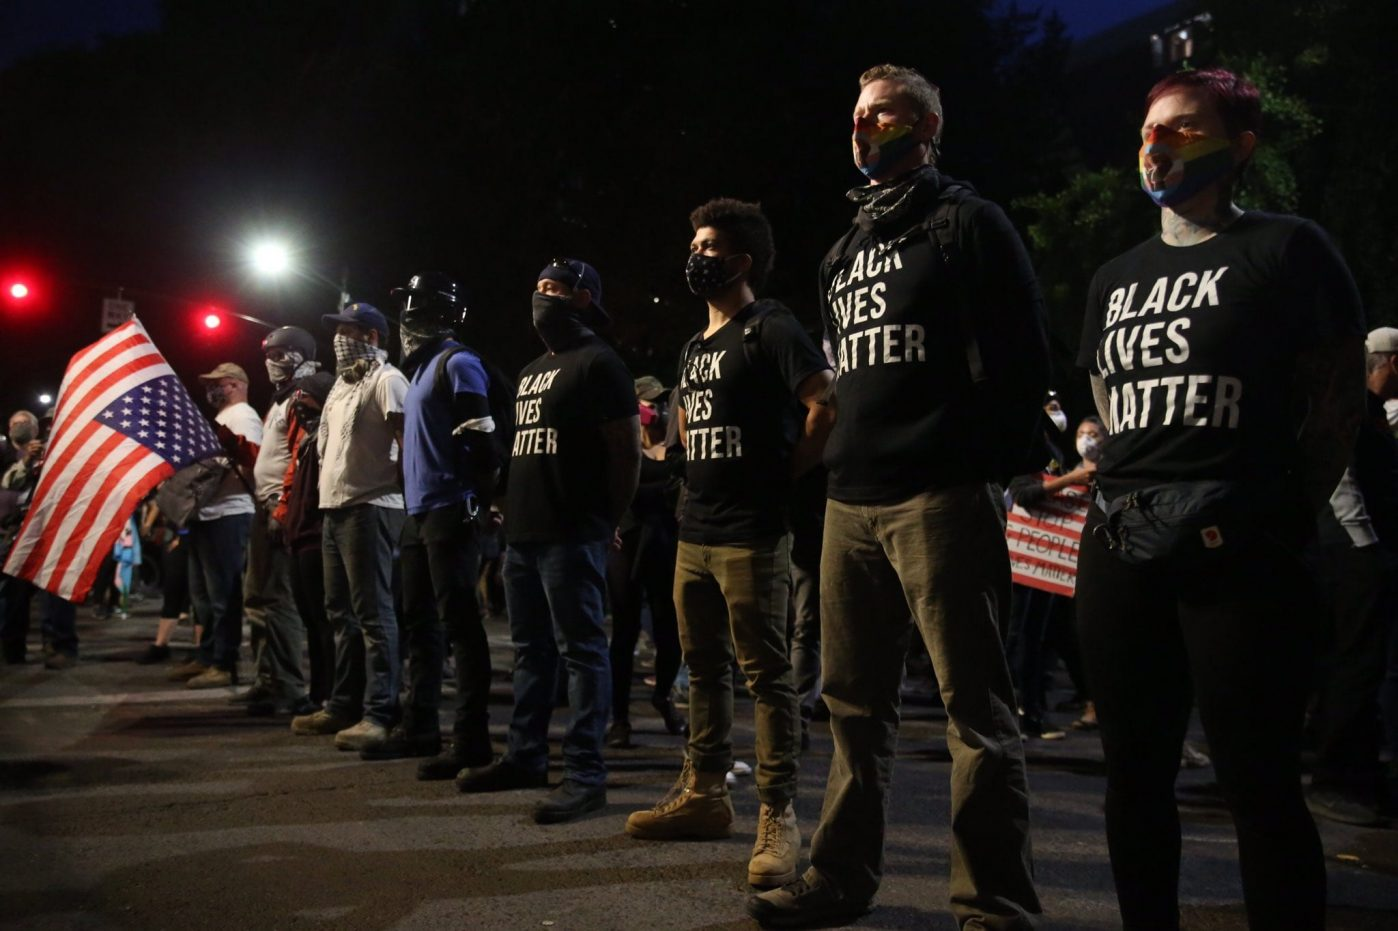 A weekend of protests in the US, 1 dead as violence erupts